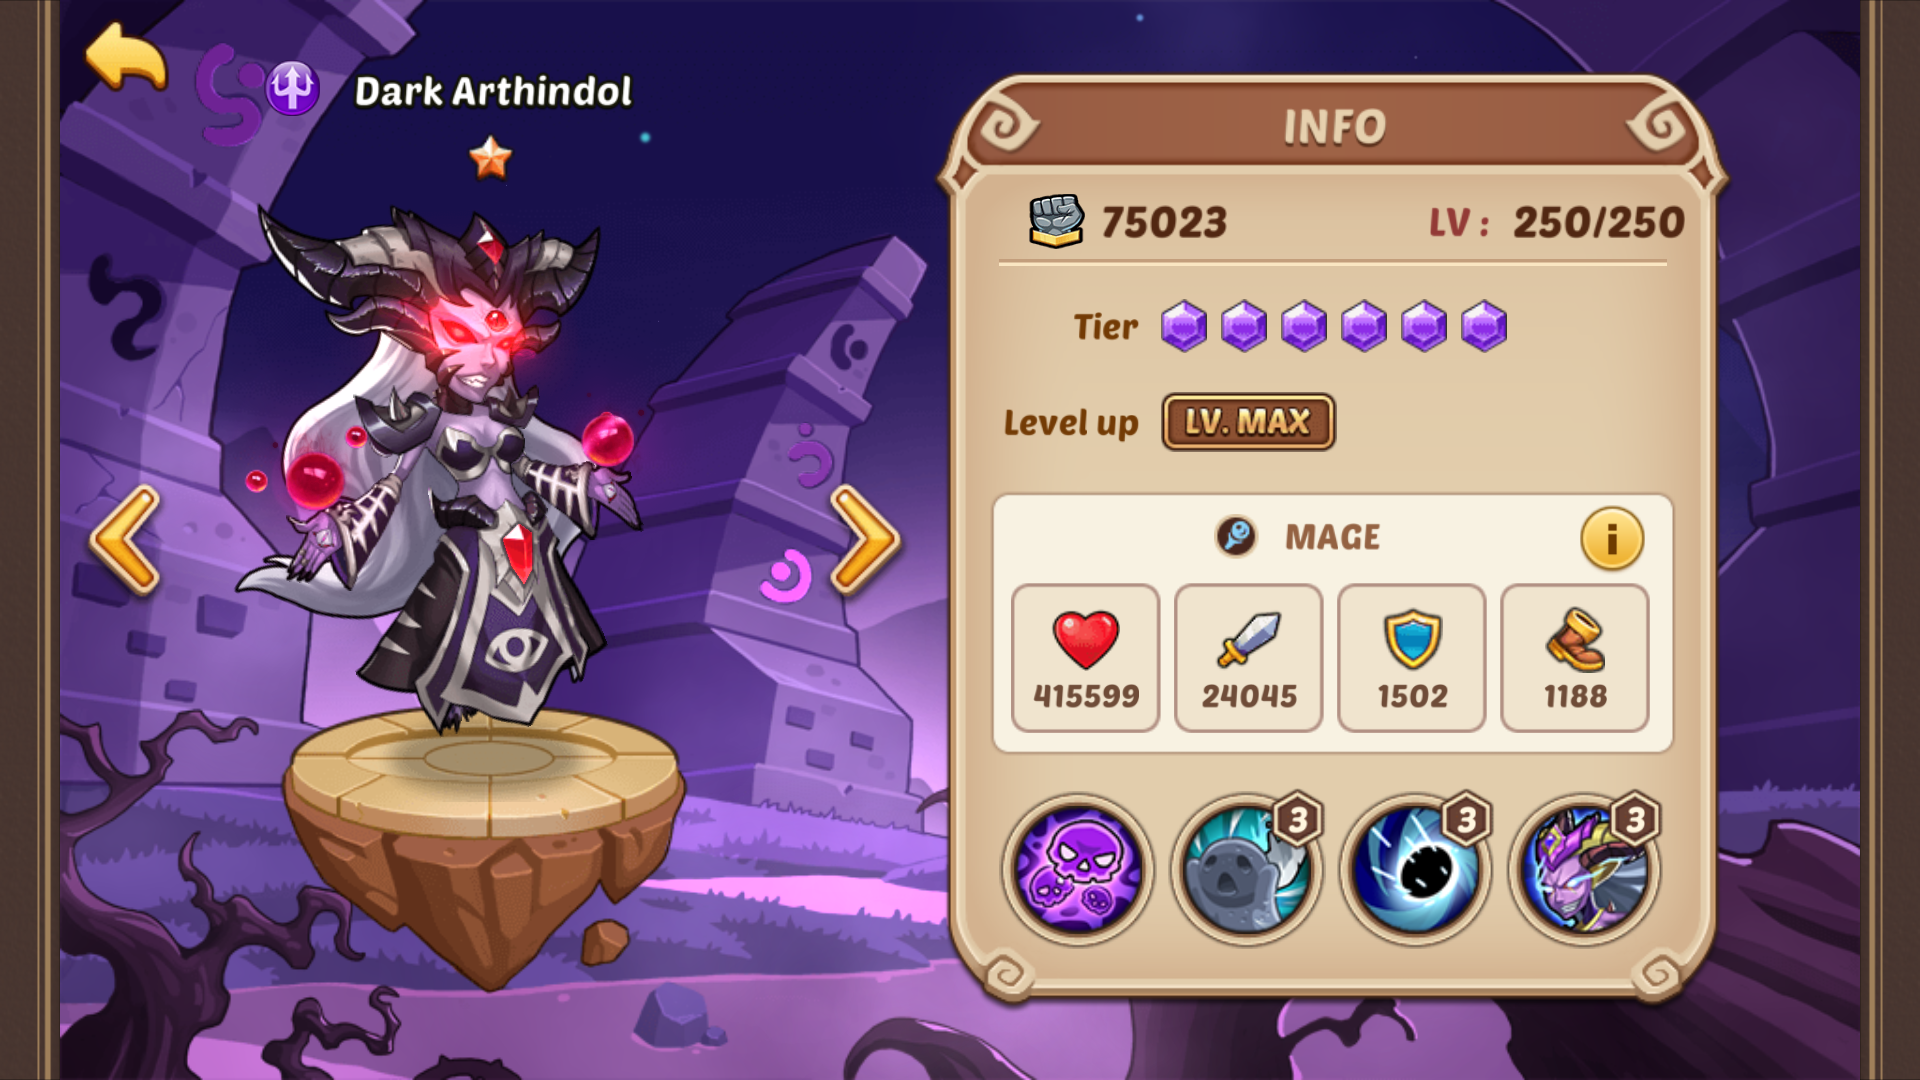 Dark Arthindol